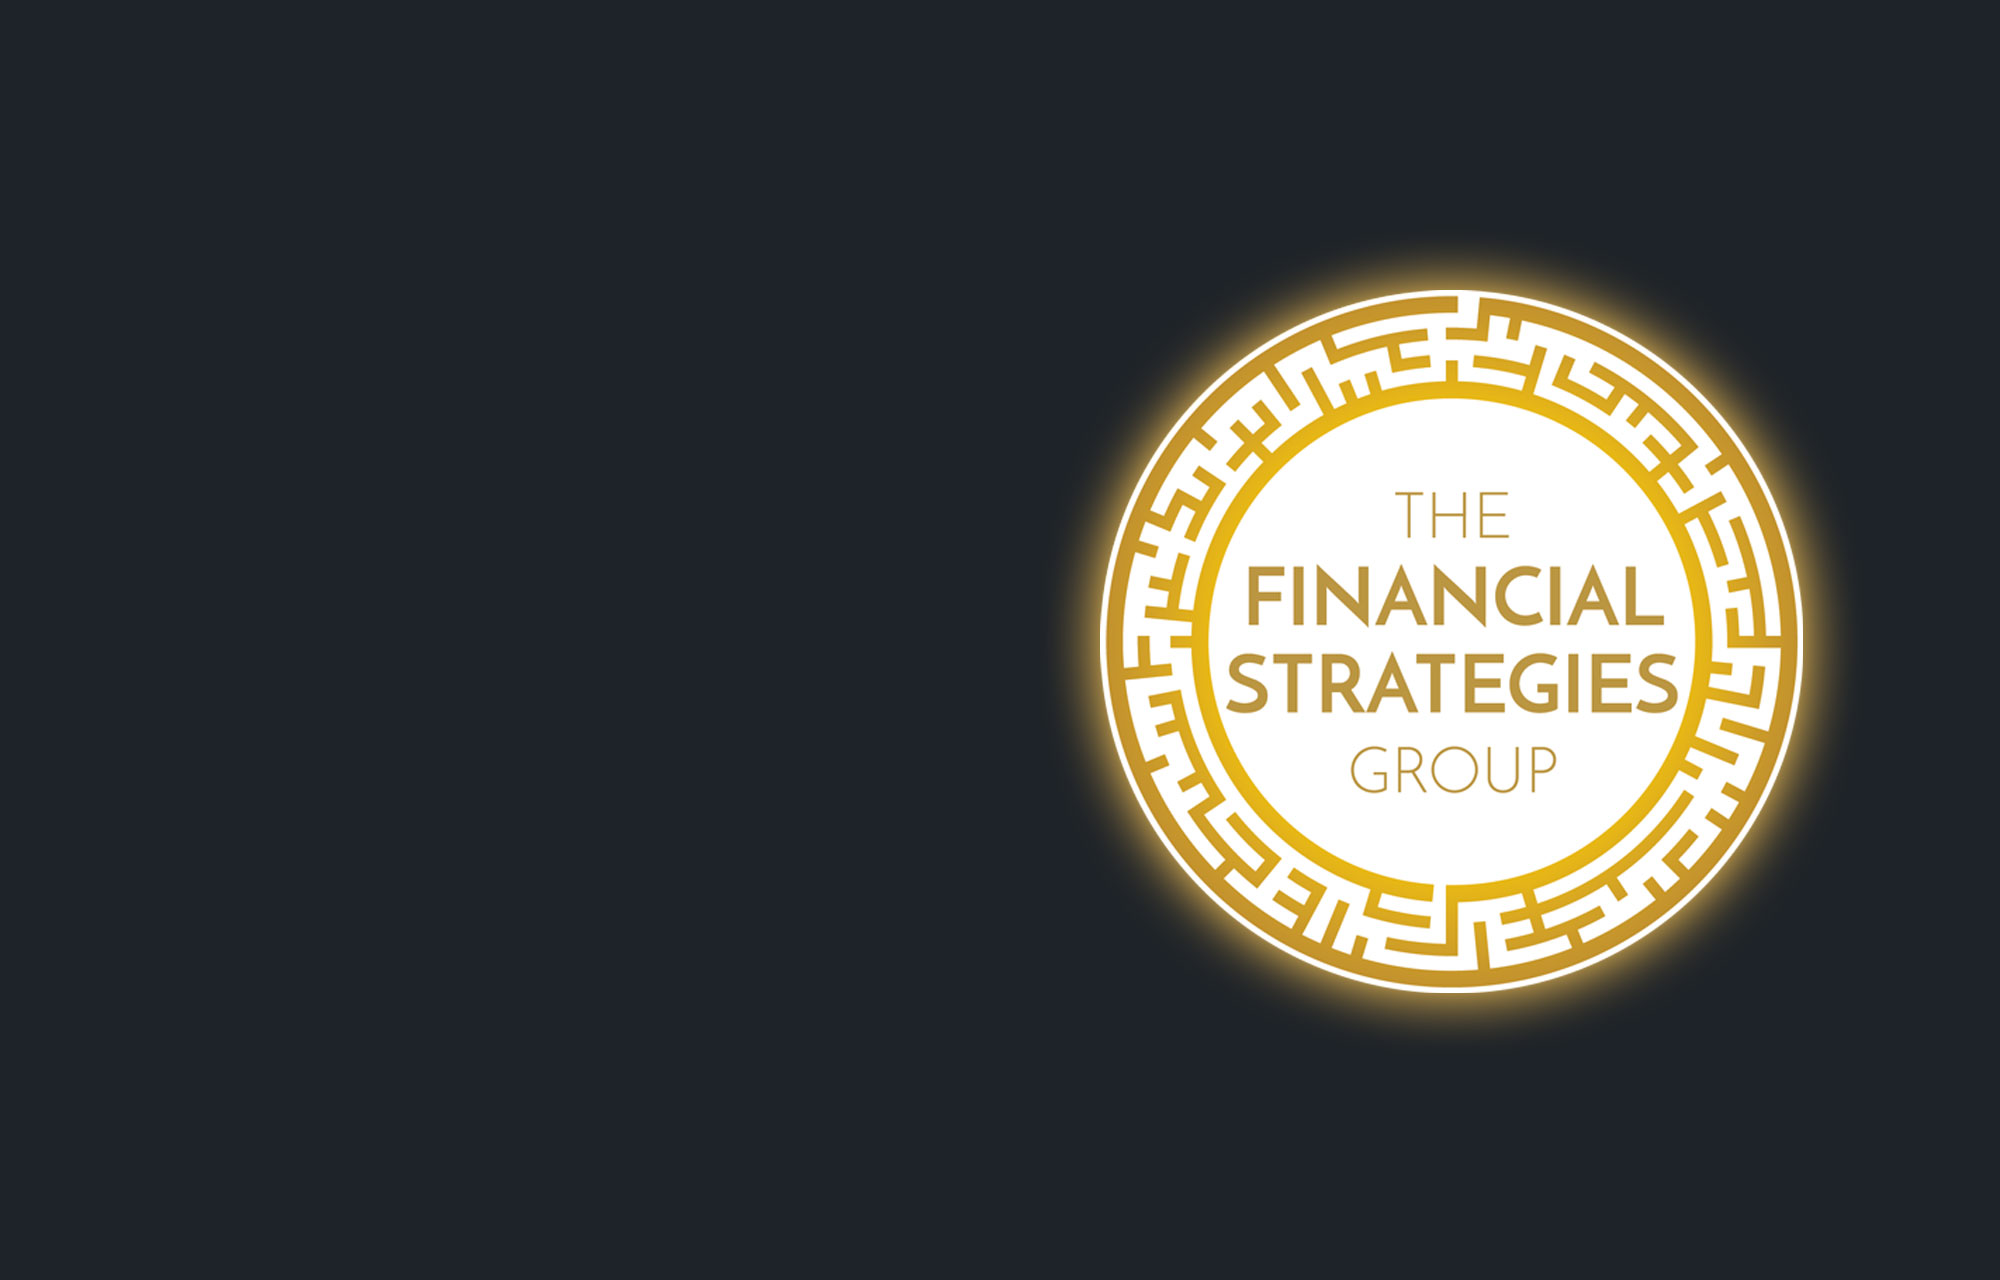 the financial strategies group